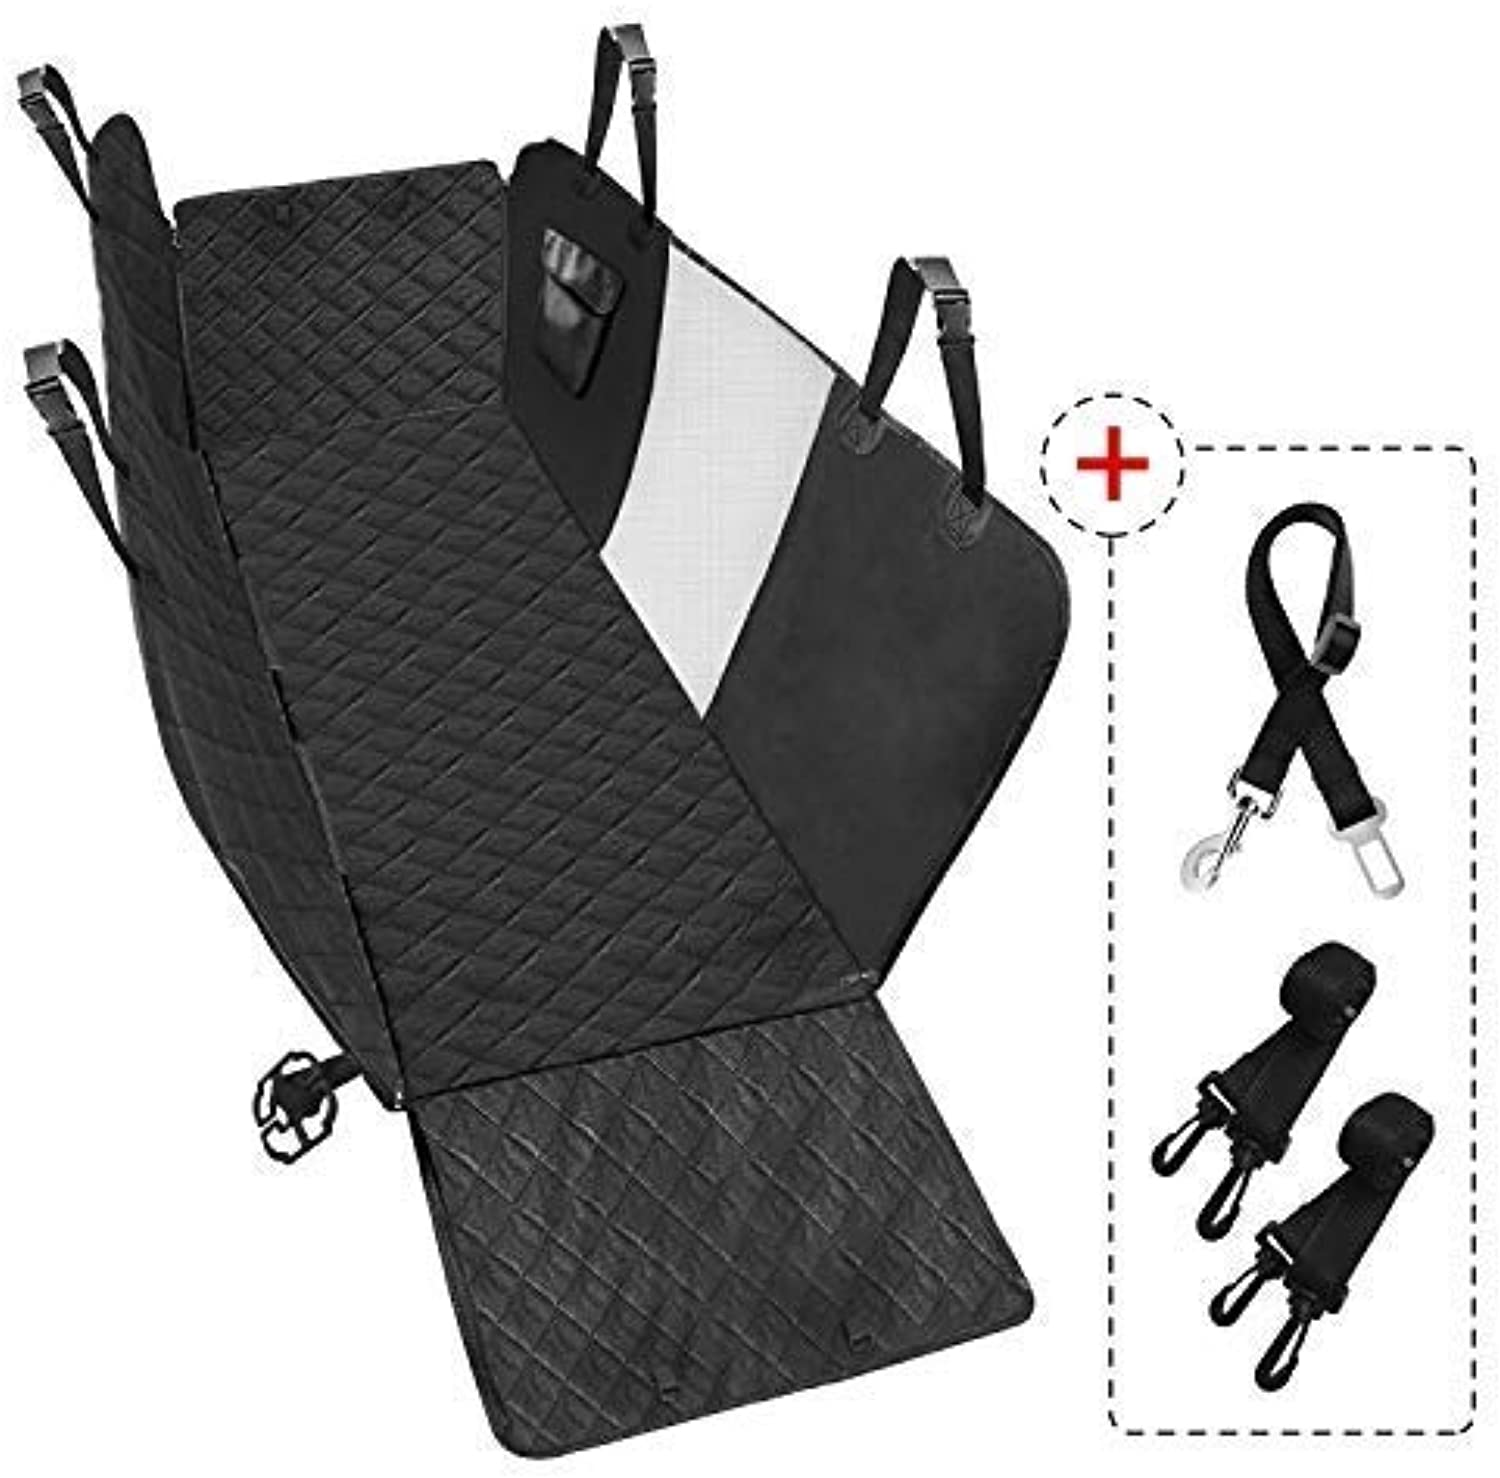 Lzour Dog Car Seat Covers Hammock  Waterproof Pet Seat Cover with Mesh Window, Side Flaps  600D Durable AntiScratch NonSlip Back Seat Predector for Cars